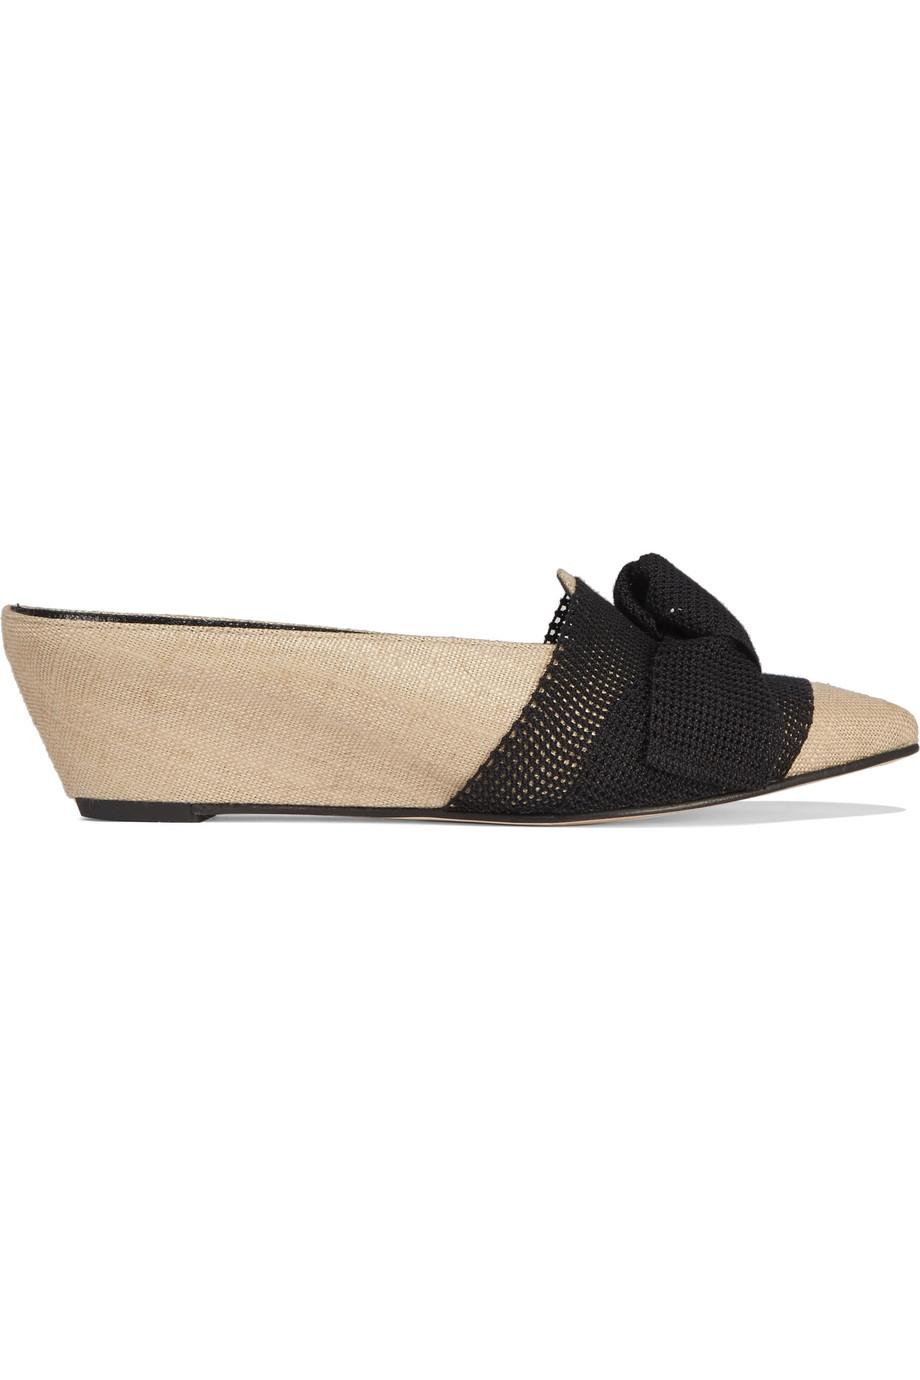 Trademark Adrien Bow-embellished Canvas And Leather Wedge Slippers Buy Cheap Official Site bTK6iGBAX3